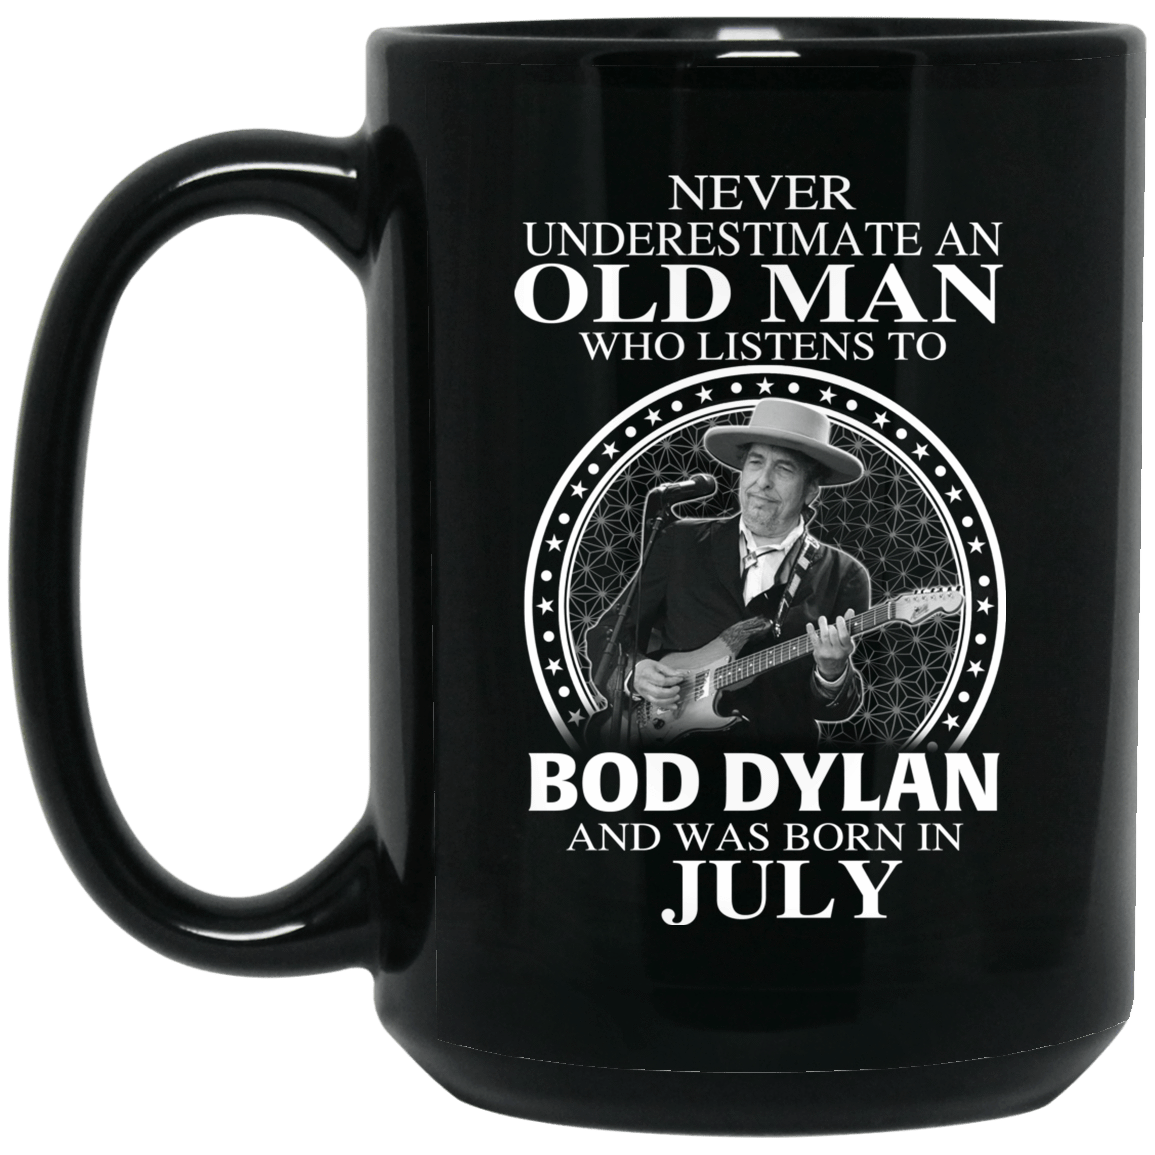 An Old Man Who Listens To Bob Dylan And Was Born In July Mug 1066-10182-76154384-49311 - Tee Ript